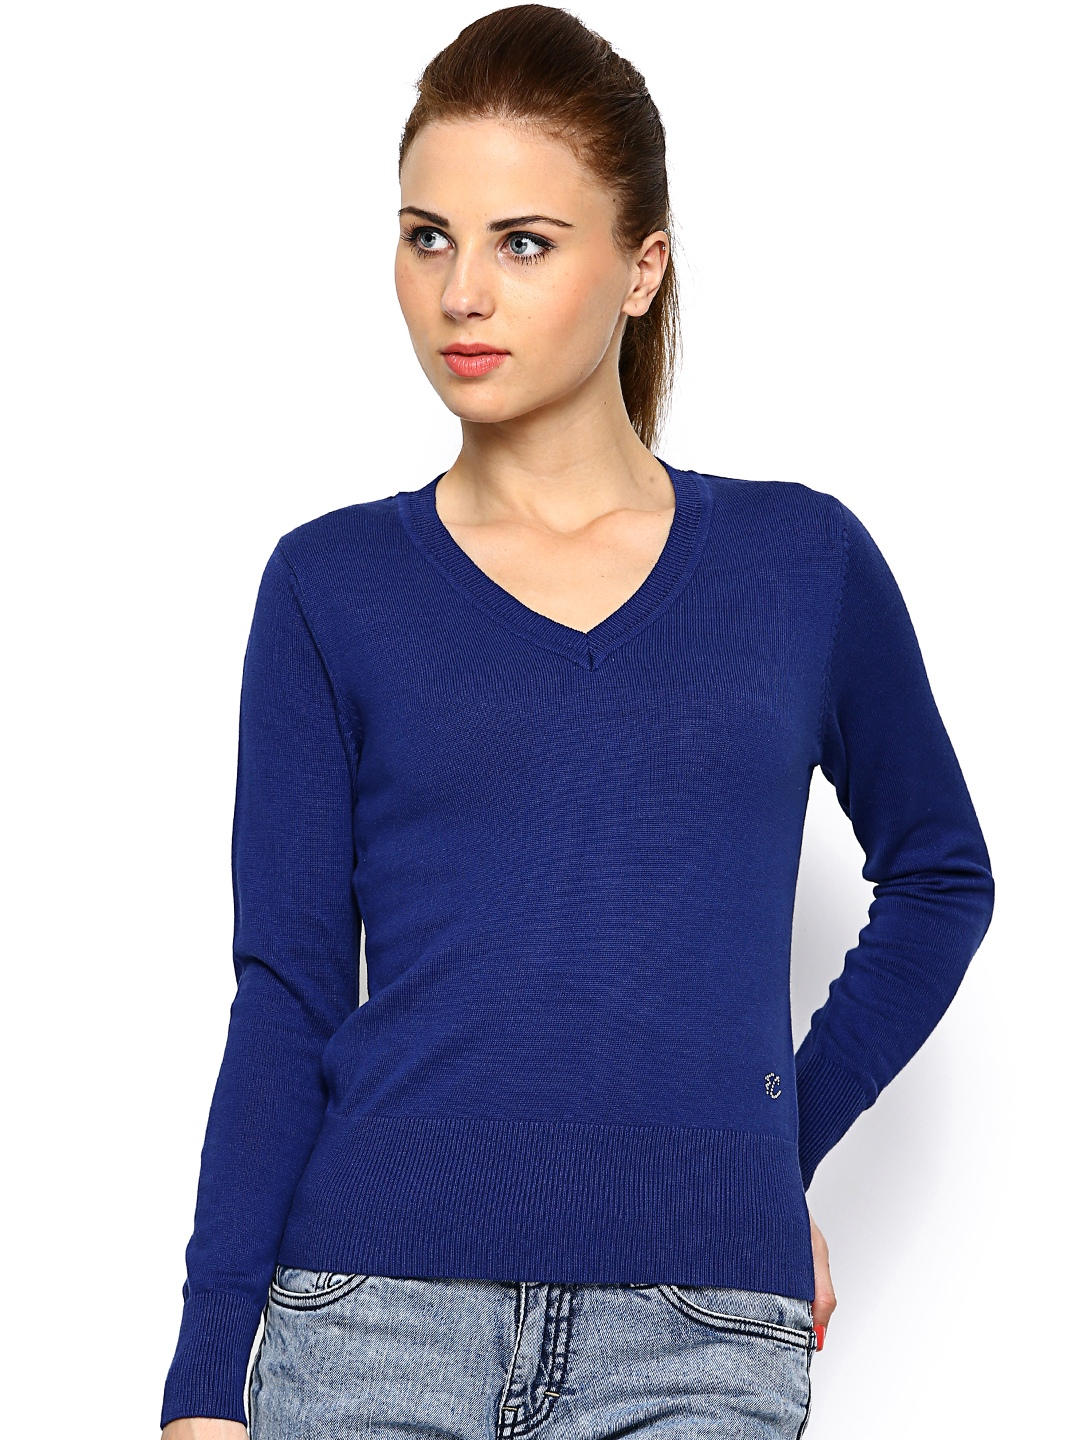 Womens clothing stores fort collins